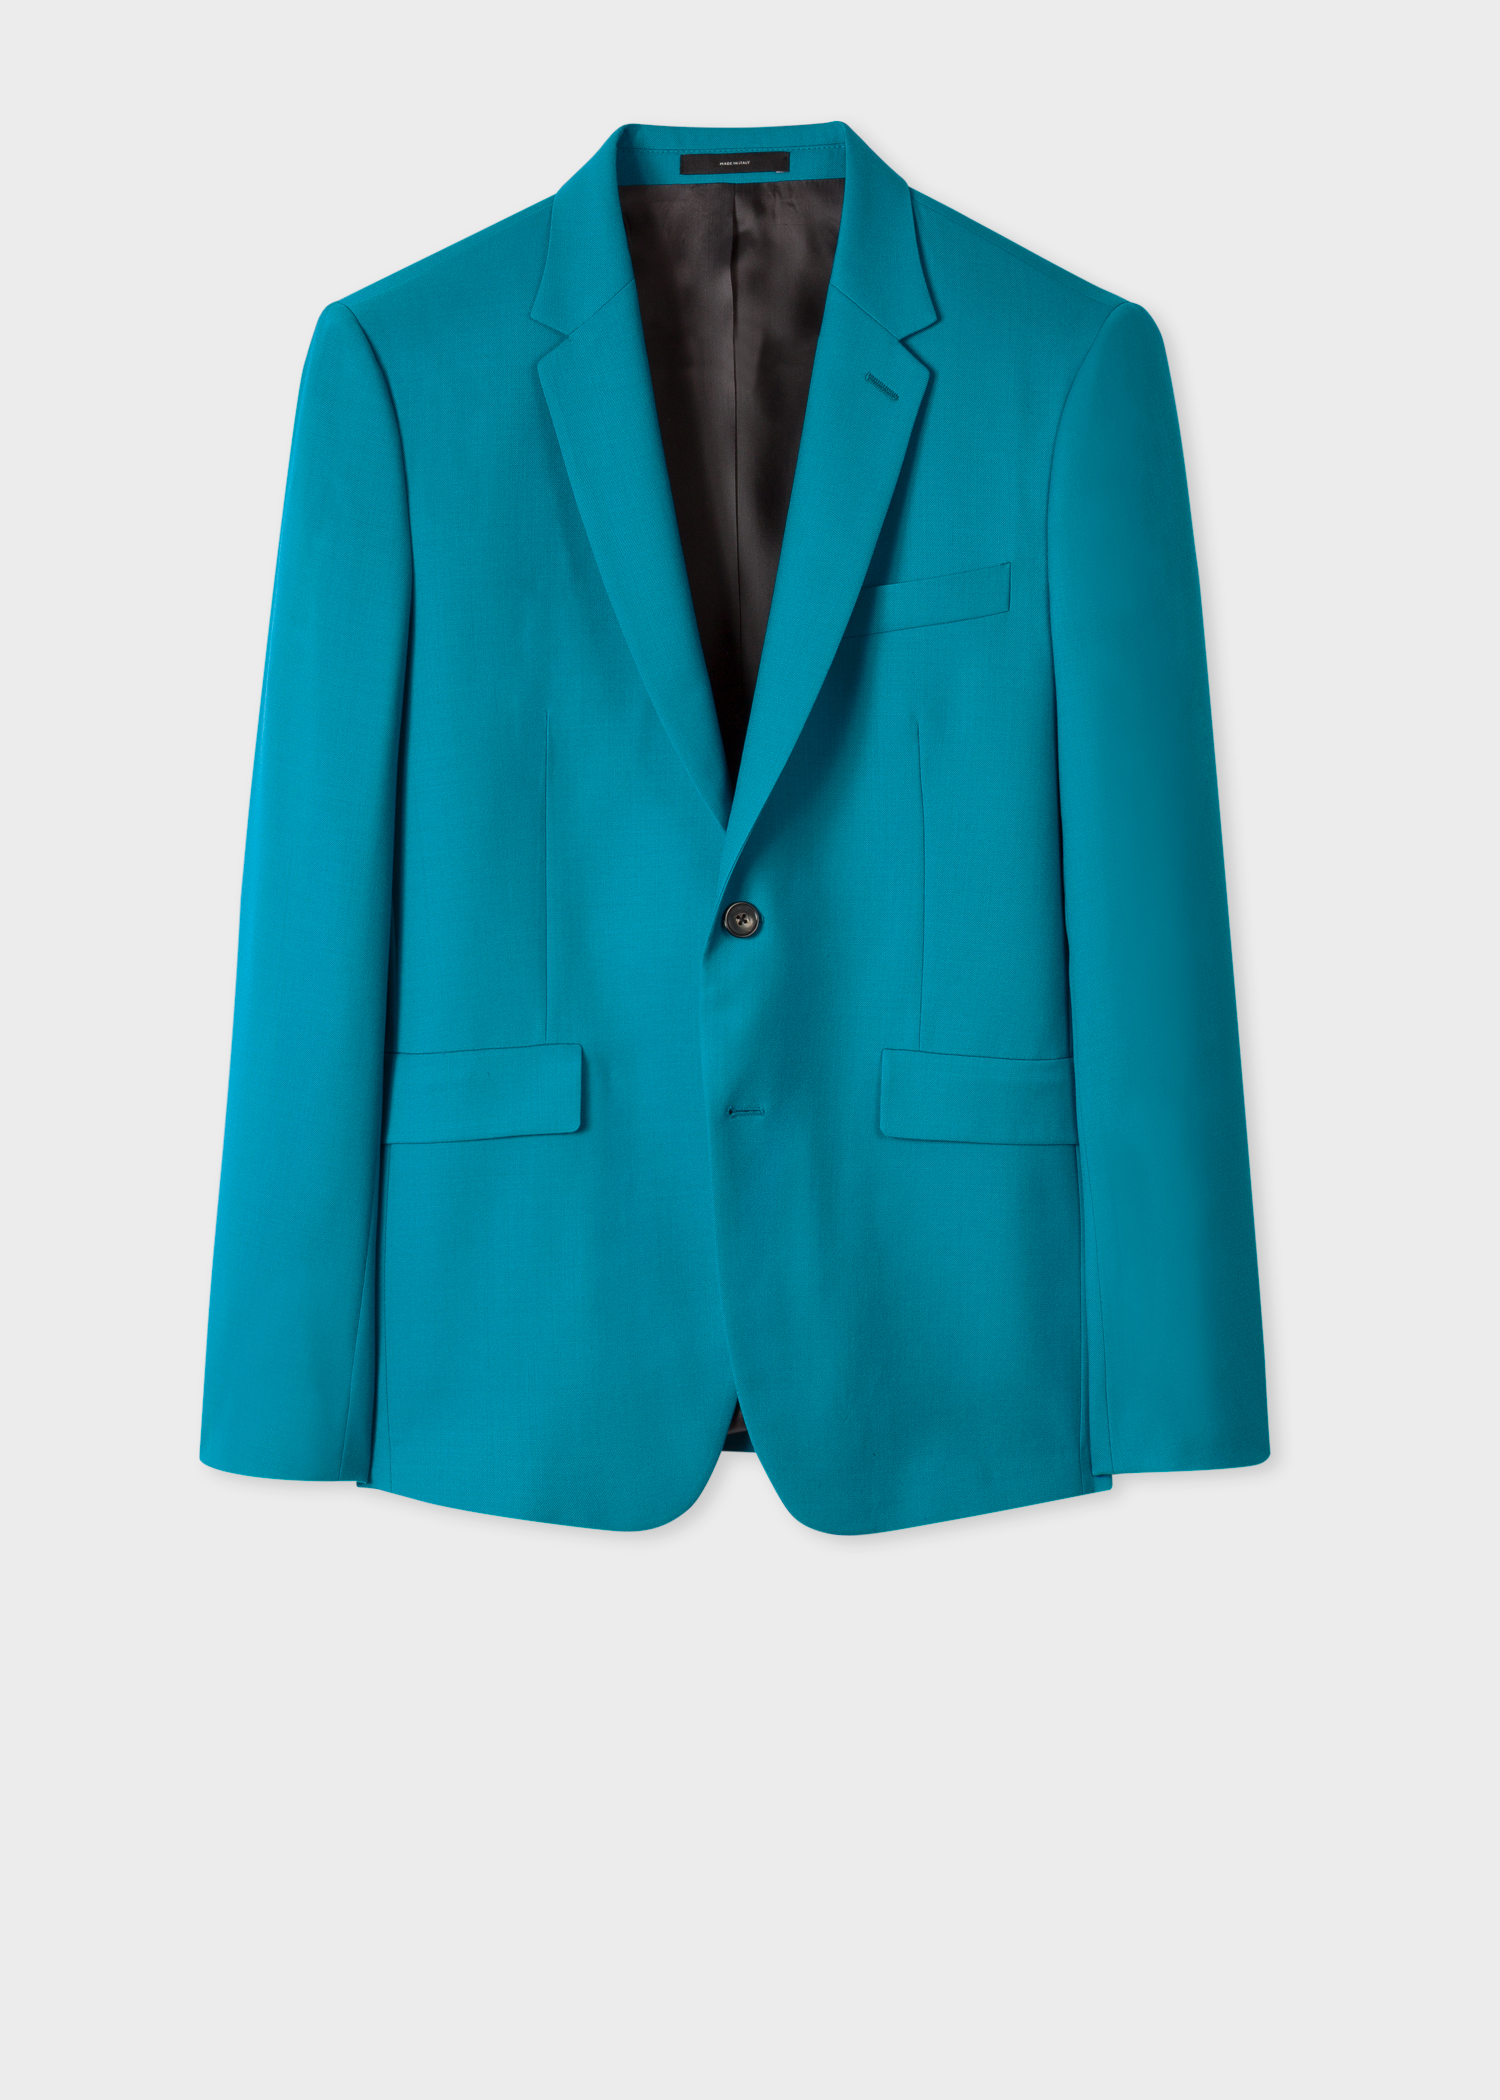 The Kensington  Mens SlimFit Turquoise Wool A Suit To